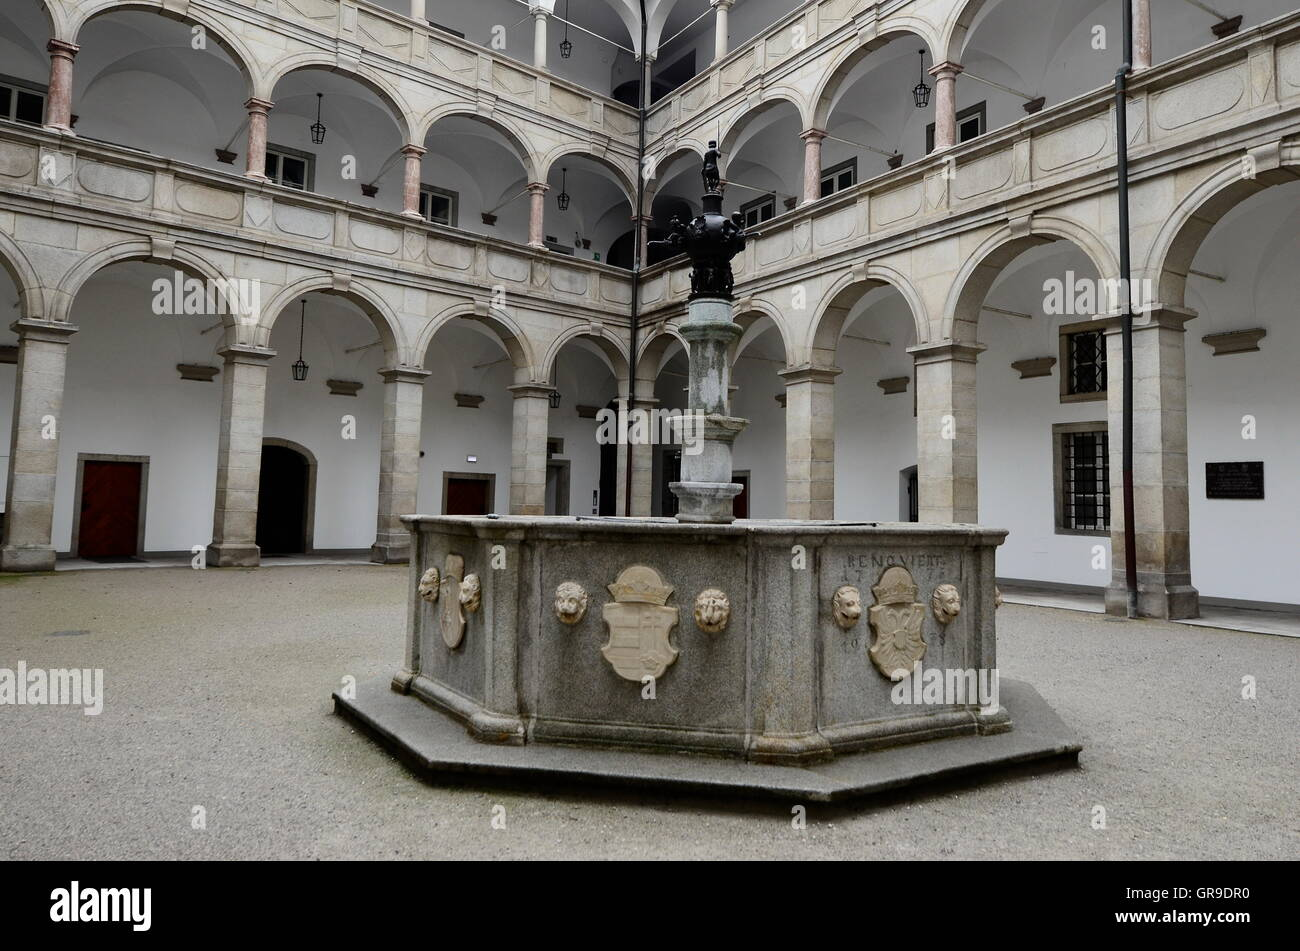 Landhaus Linz, Arcaded Courtyard With Fountain Planet - Stock Image